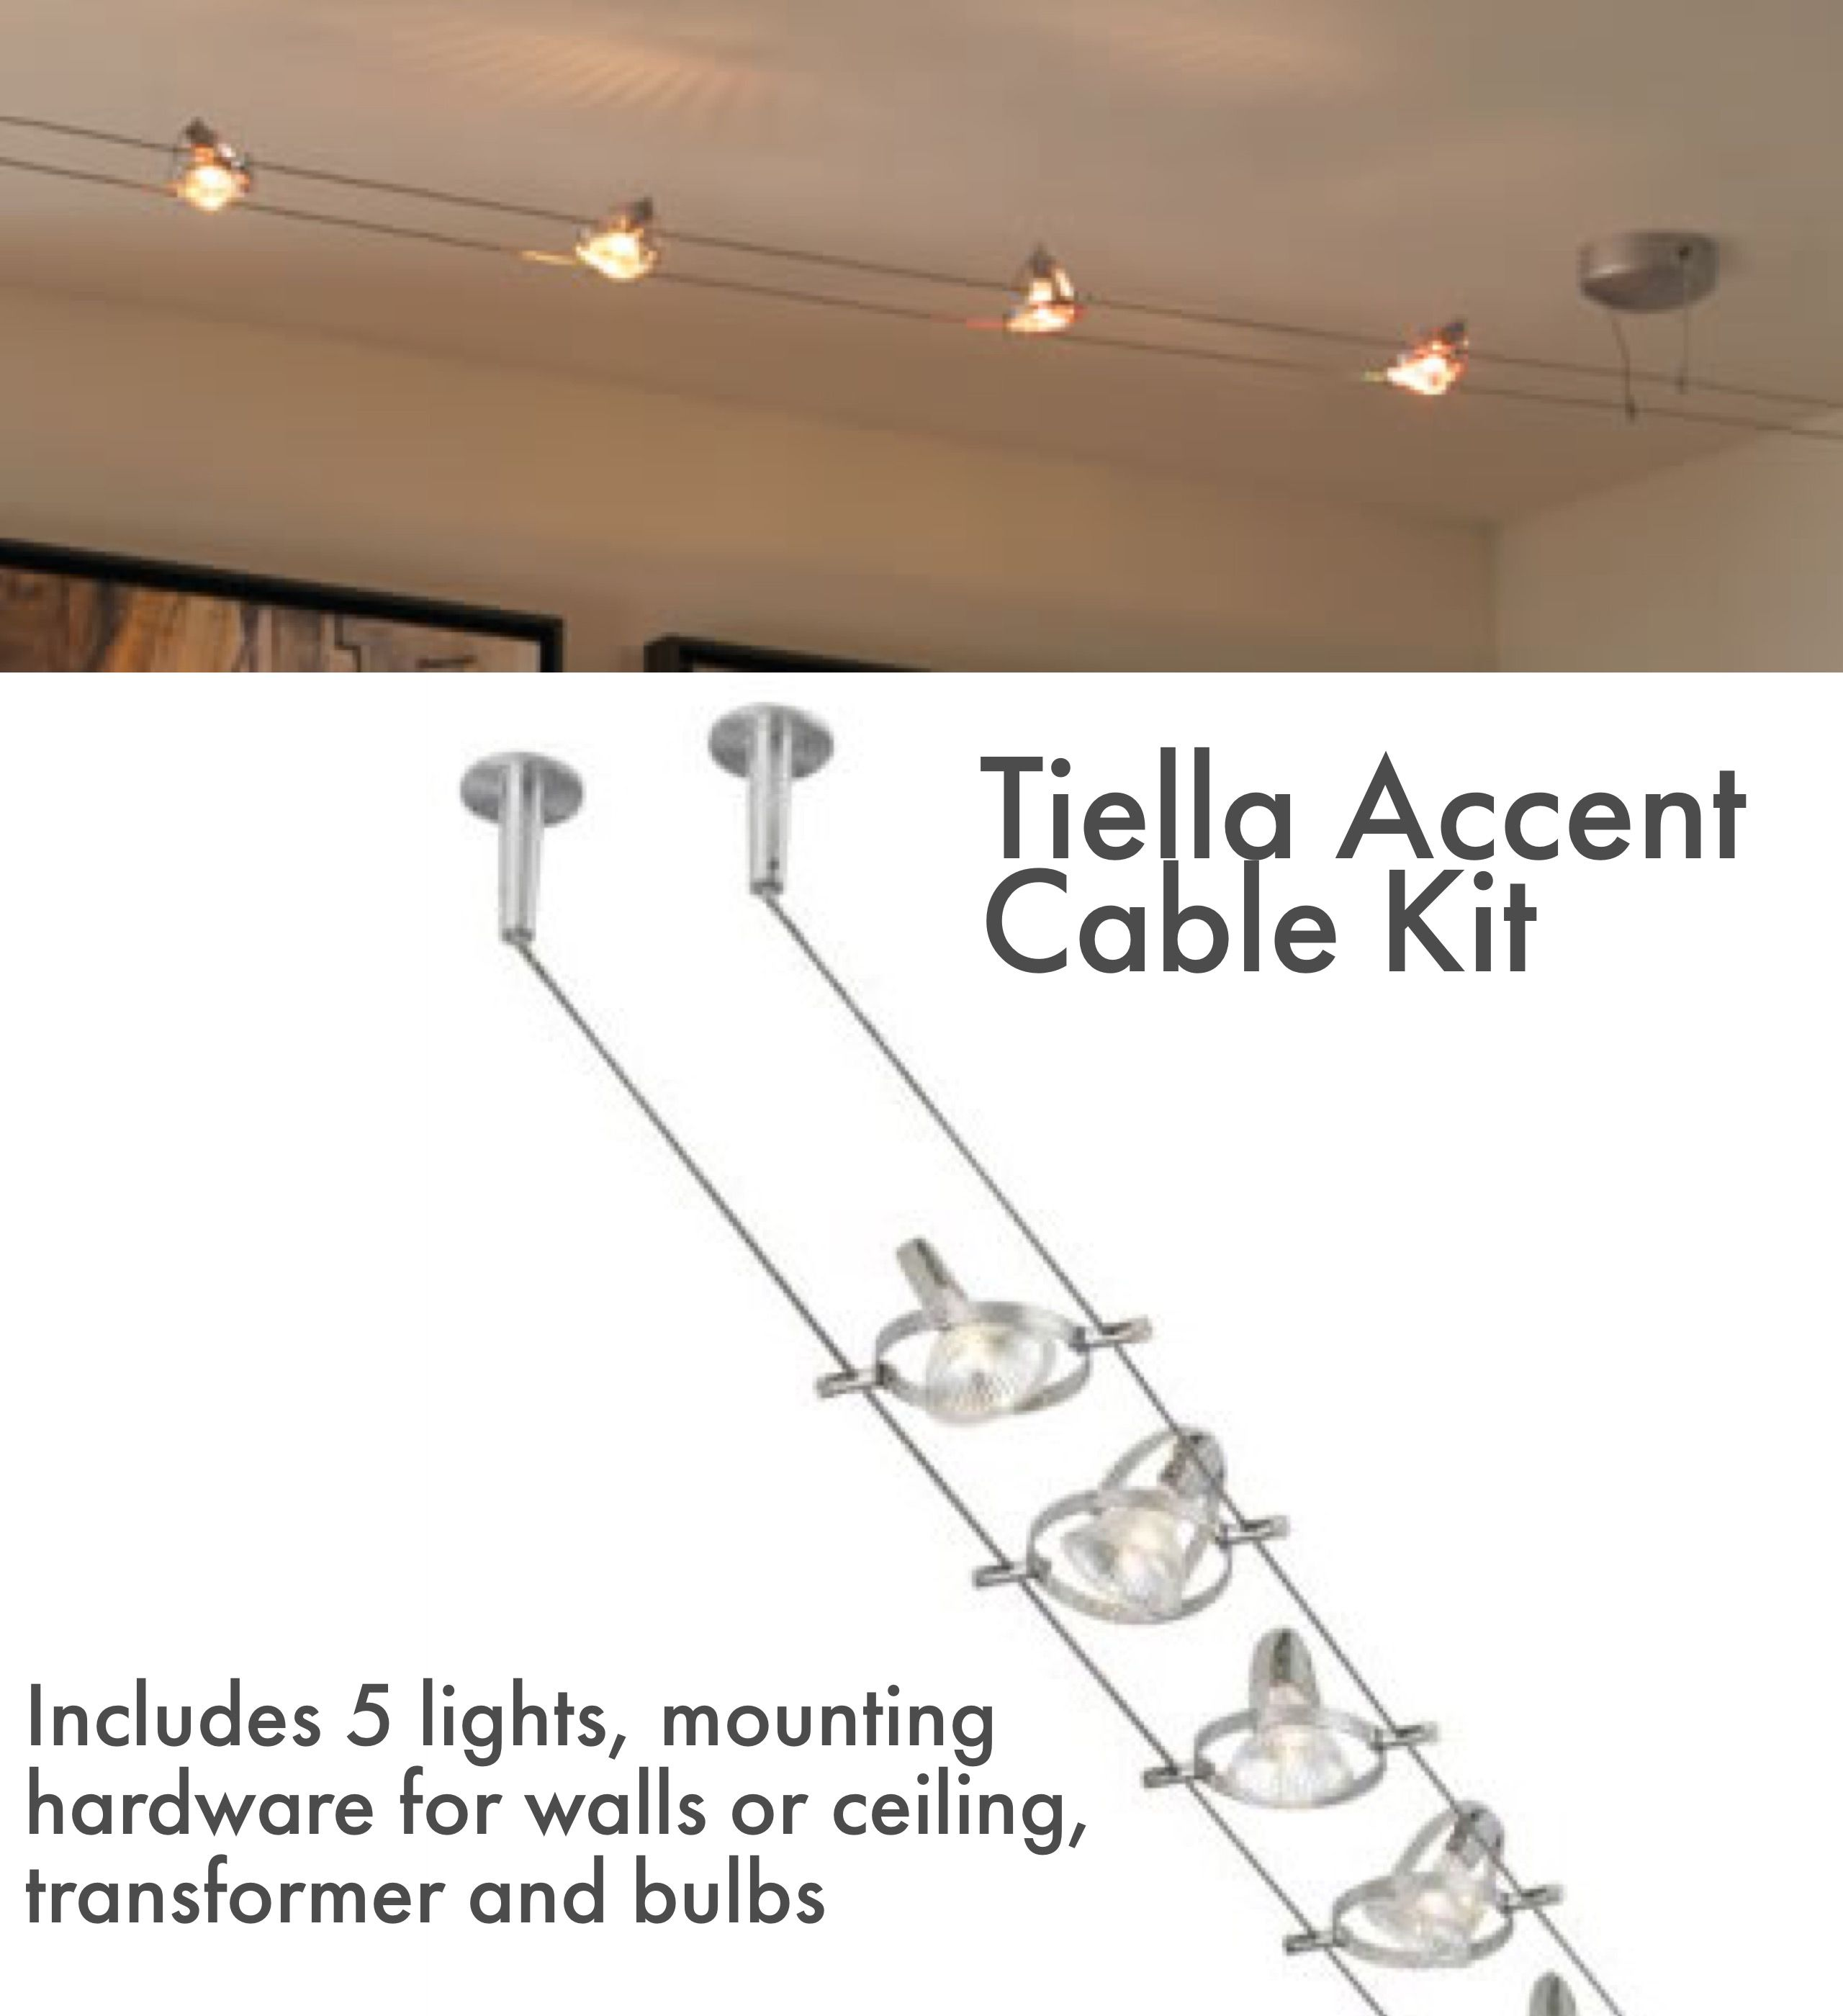 Tiella 800cbl5p Accent 5 Light Cable Kit 800cbl5pn 155 00 Accent Rail Kit 5 Head Cable Kit With Track Lighting Kitchen Wire Track Lighting Ceiling Lights